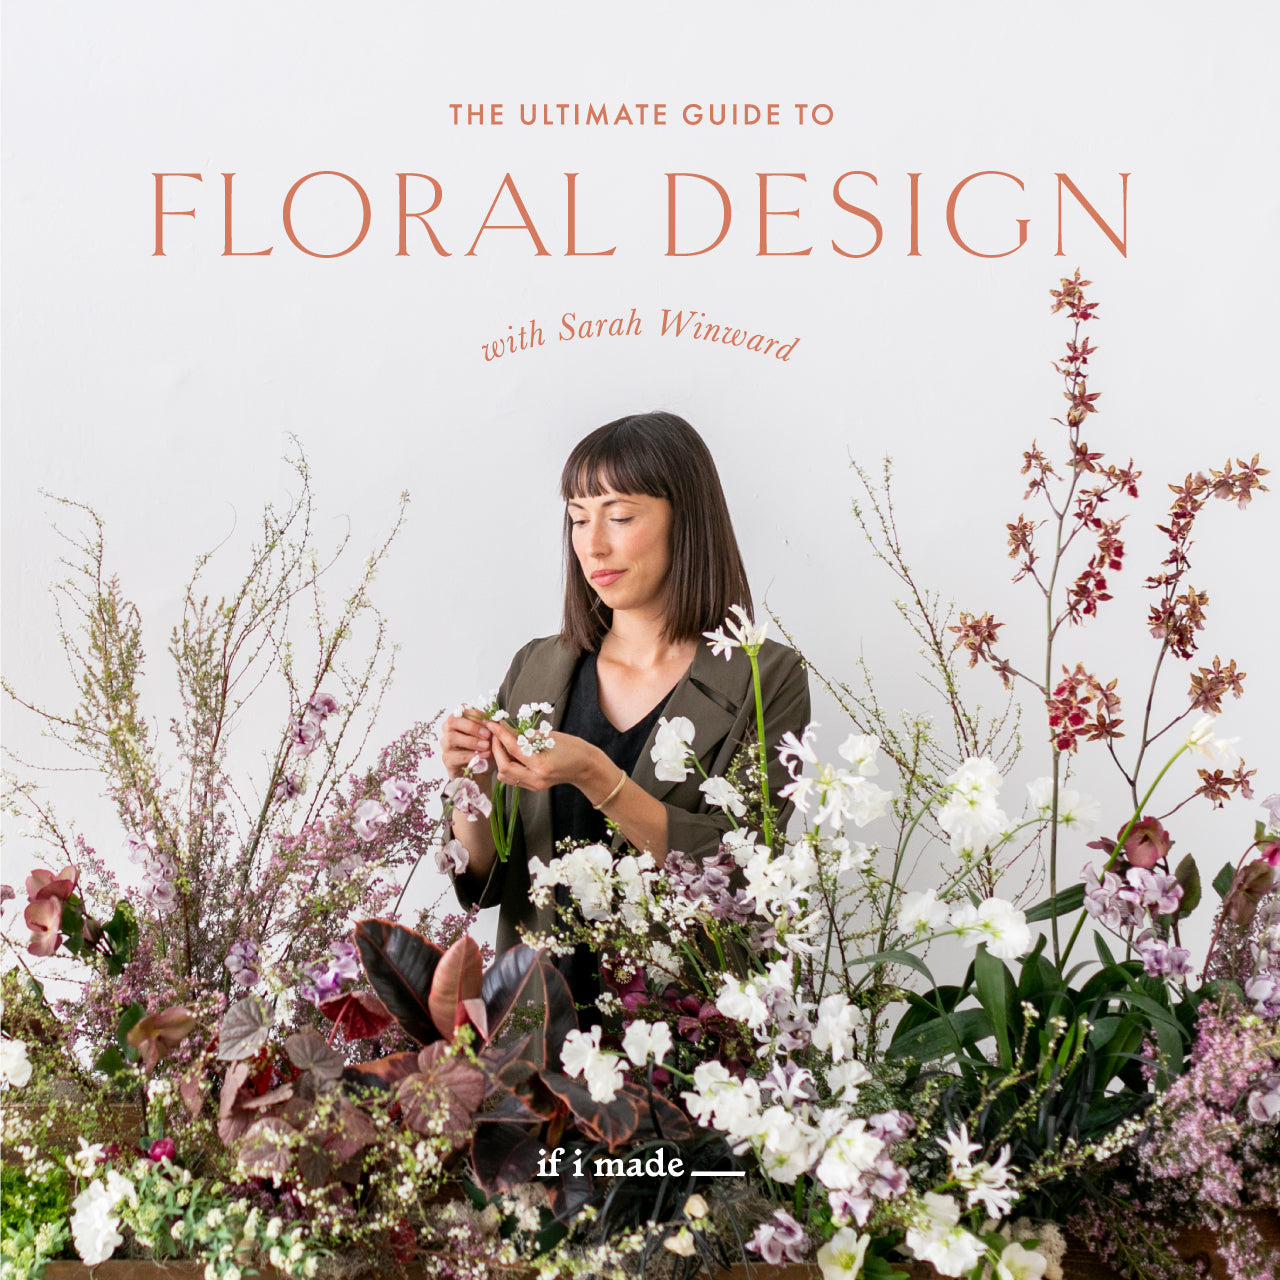 Sale Payment Plan: The Ultimate Guide to Wedding Floral Design with Sarah Winward - 39 payments of $99